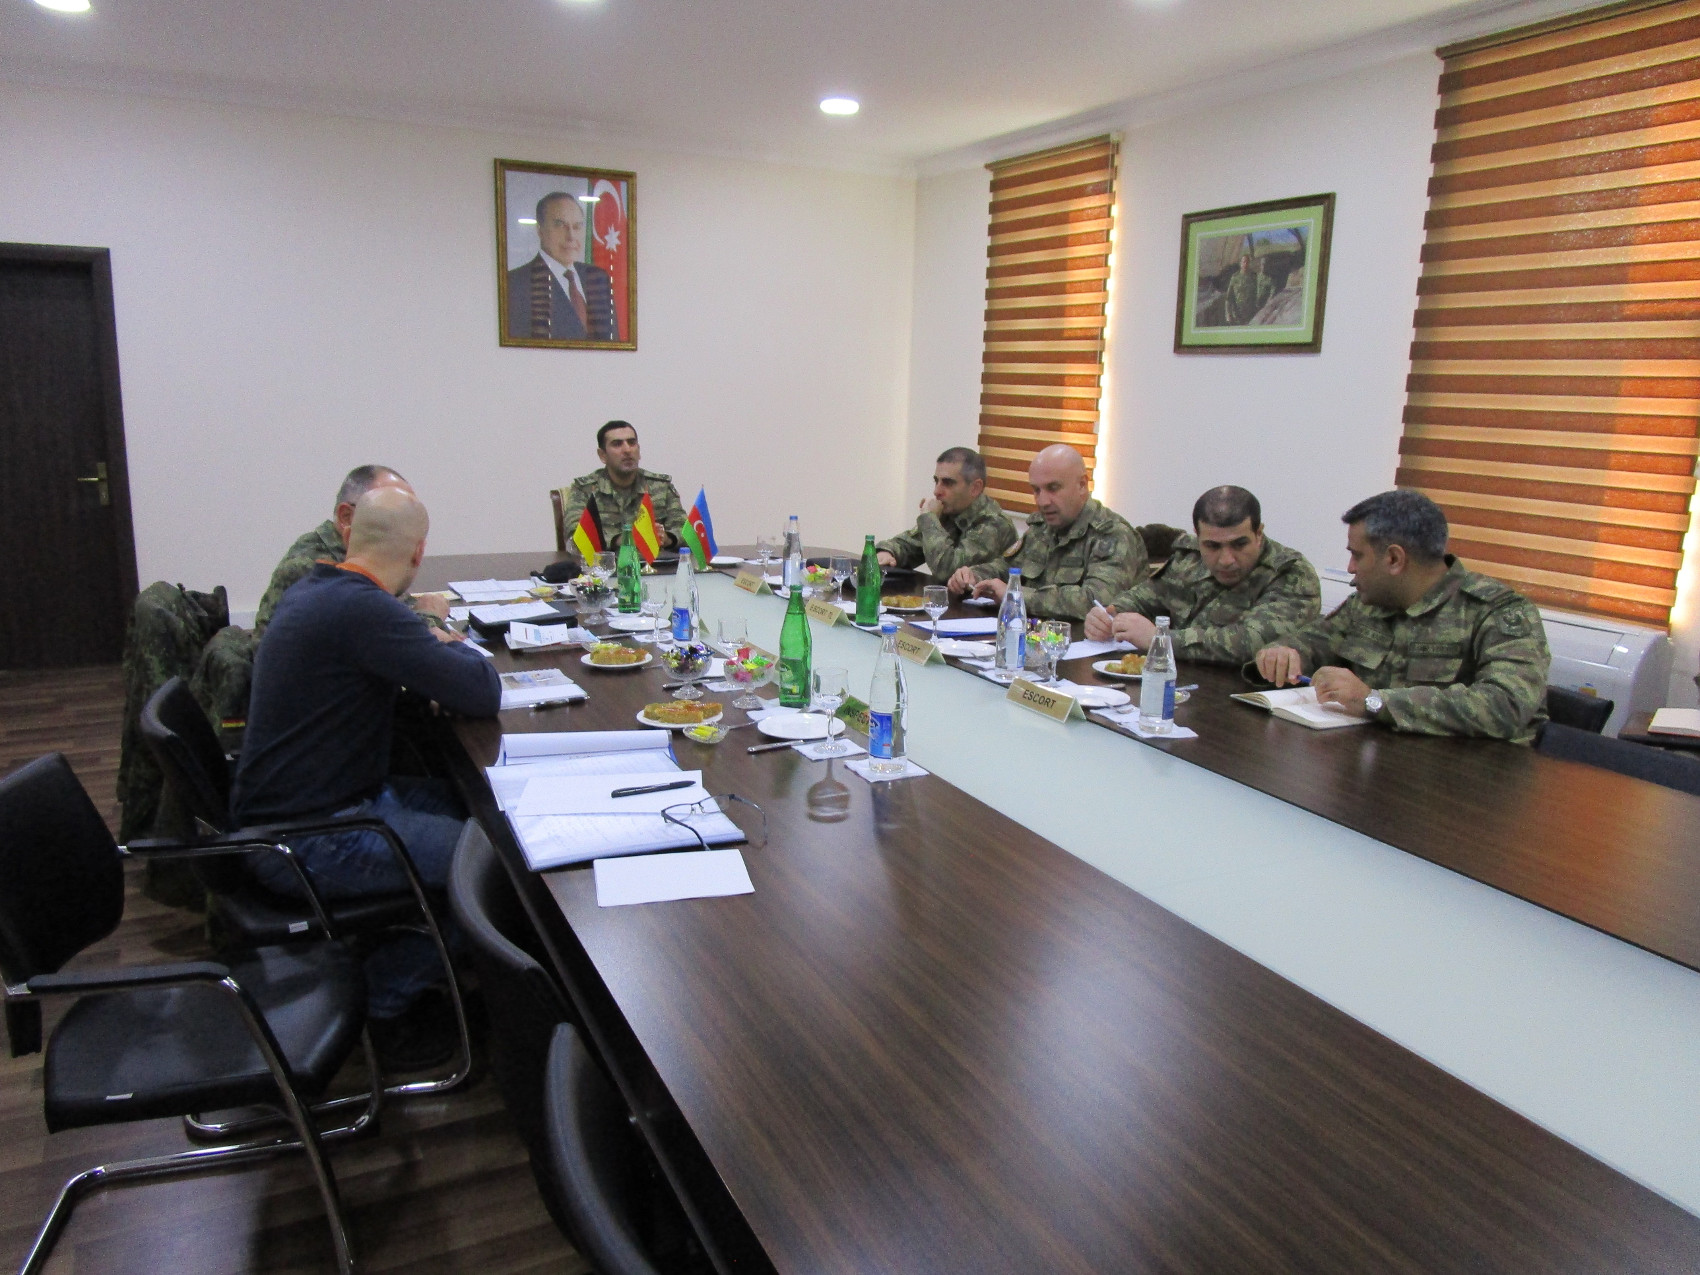 The Spanish Verification Unit participates in an evaluation of Germany's Vienna Document in Azerbaijan